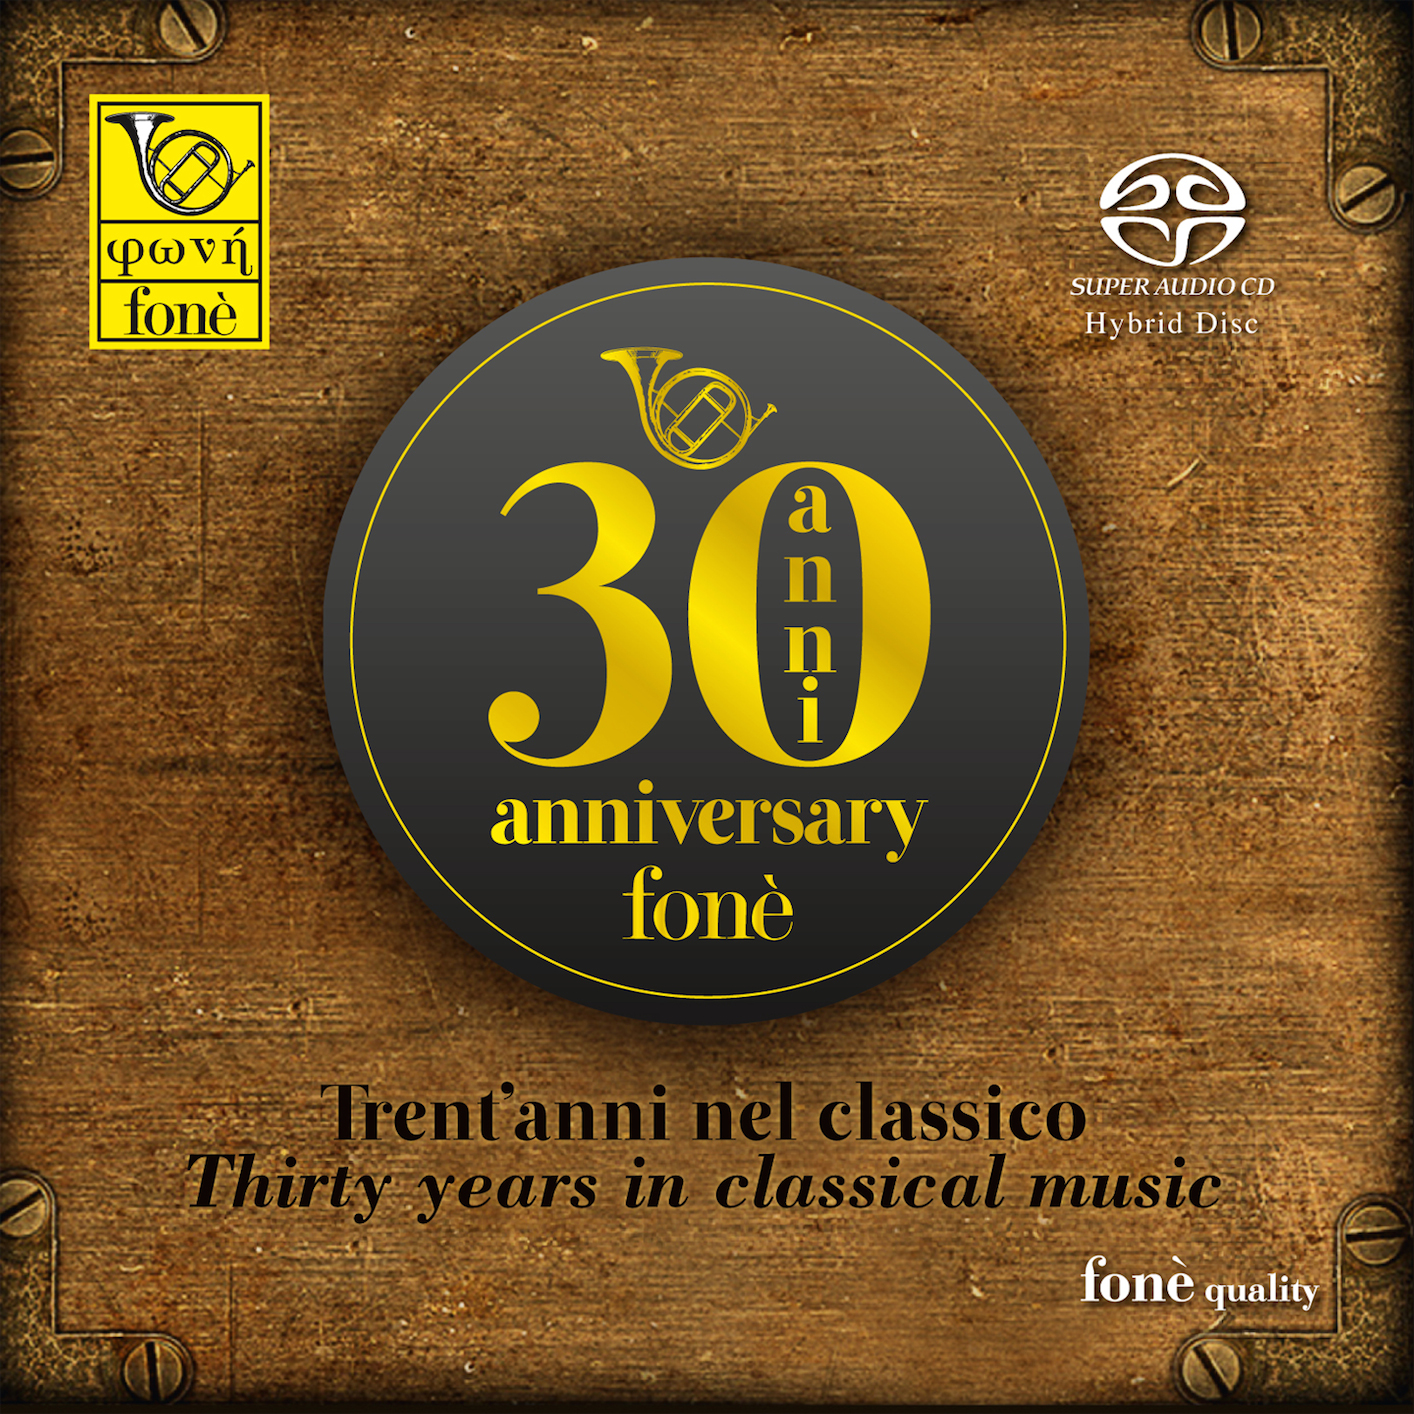 Cover fonè Trent'anni nel classico - Thirty Years in Classical Music